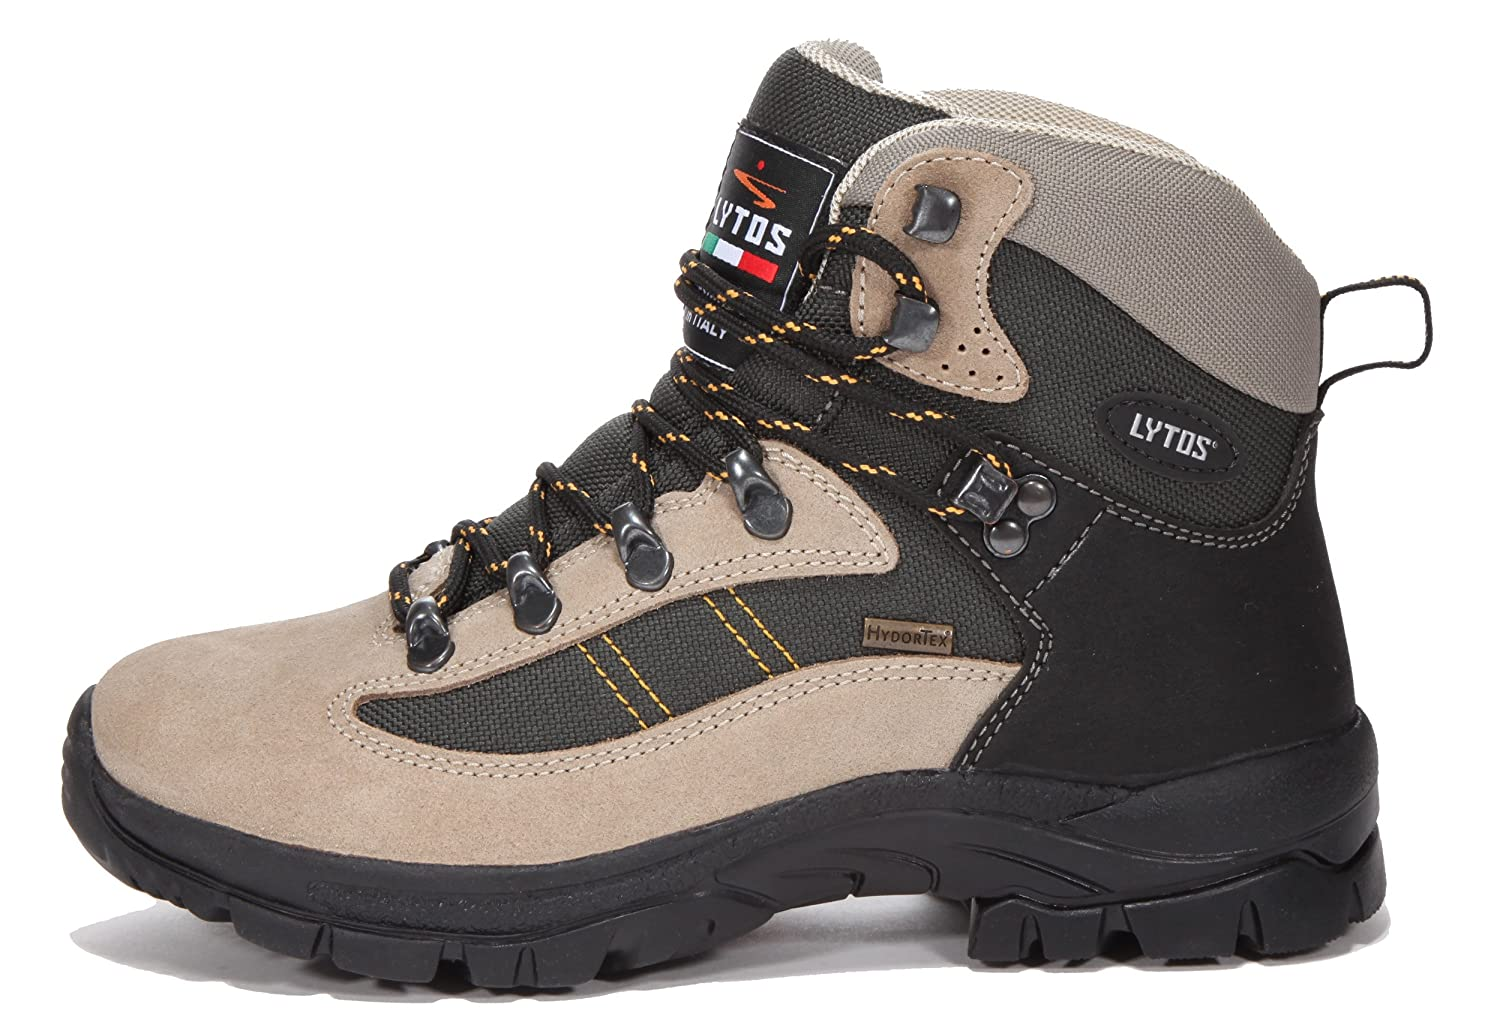 LYTOS Outdoor Stiefelette Tex Beige/Oliv